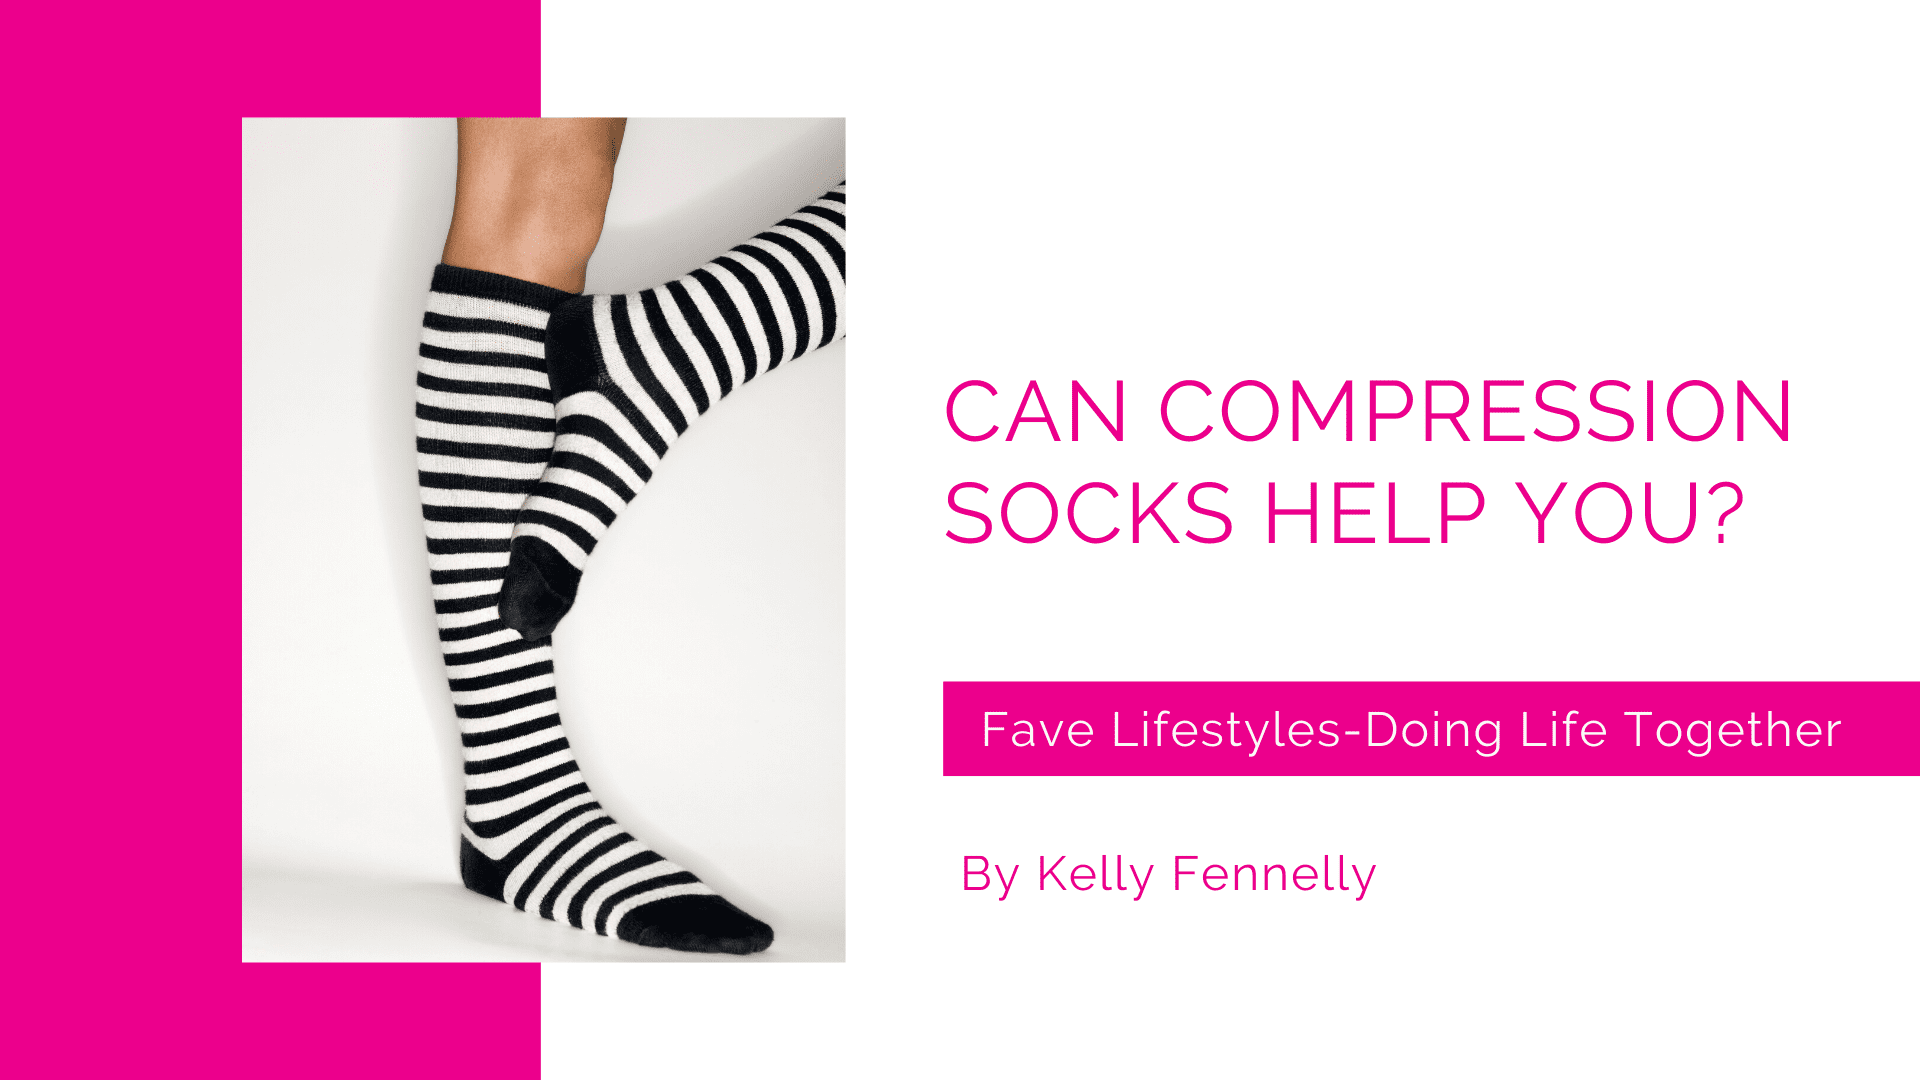 Can Compression Socks Help You?